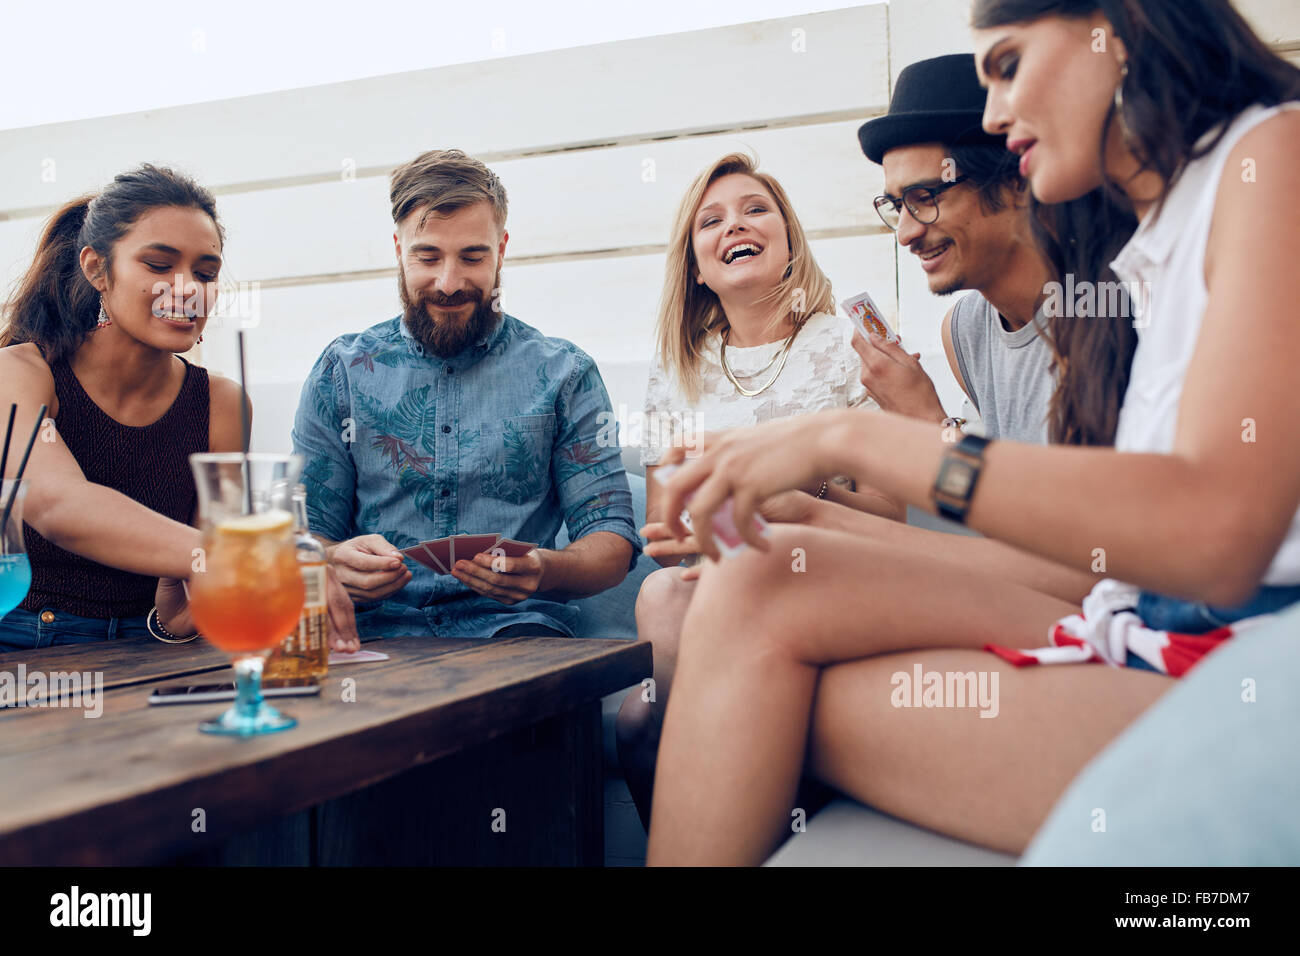 Group of friends sitting at a wooden table and playing cards. Cheerful young people partying together and playing - Stock Image